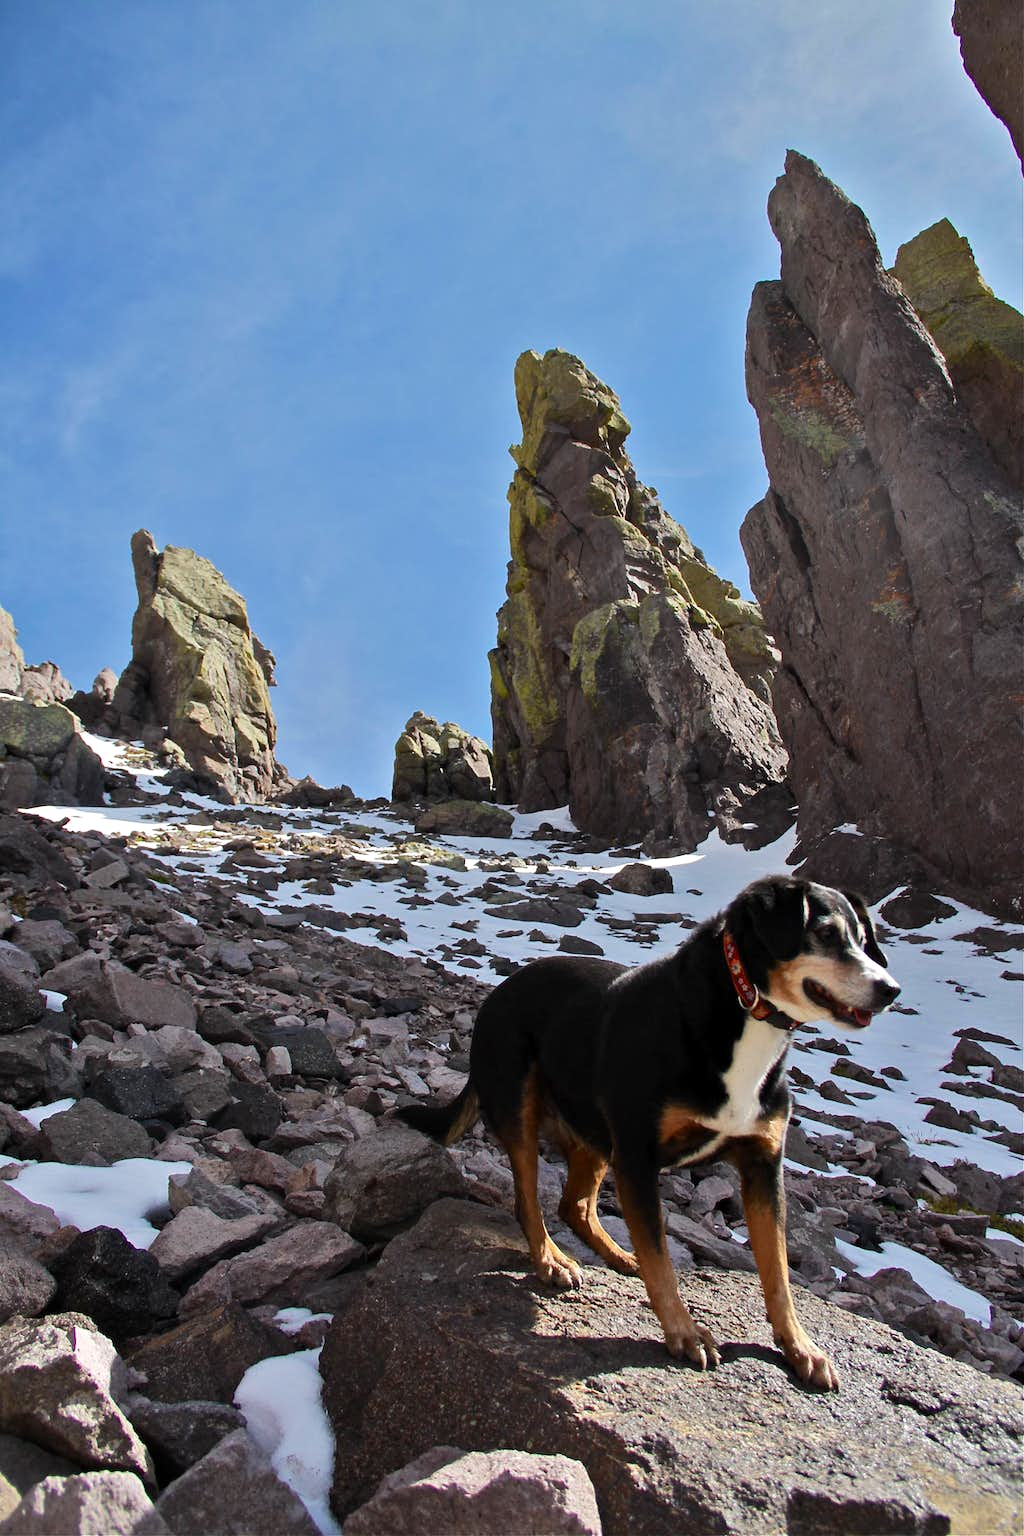 Duchess posing in the NW couloir